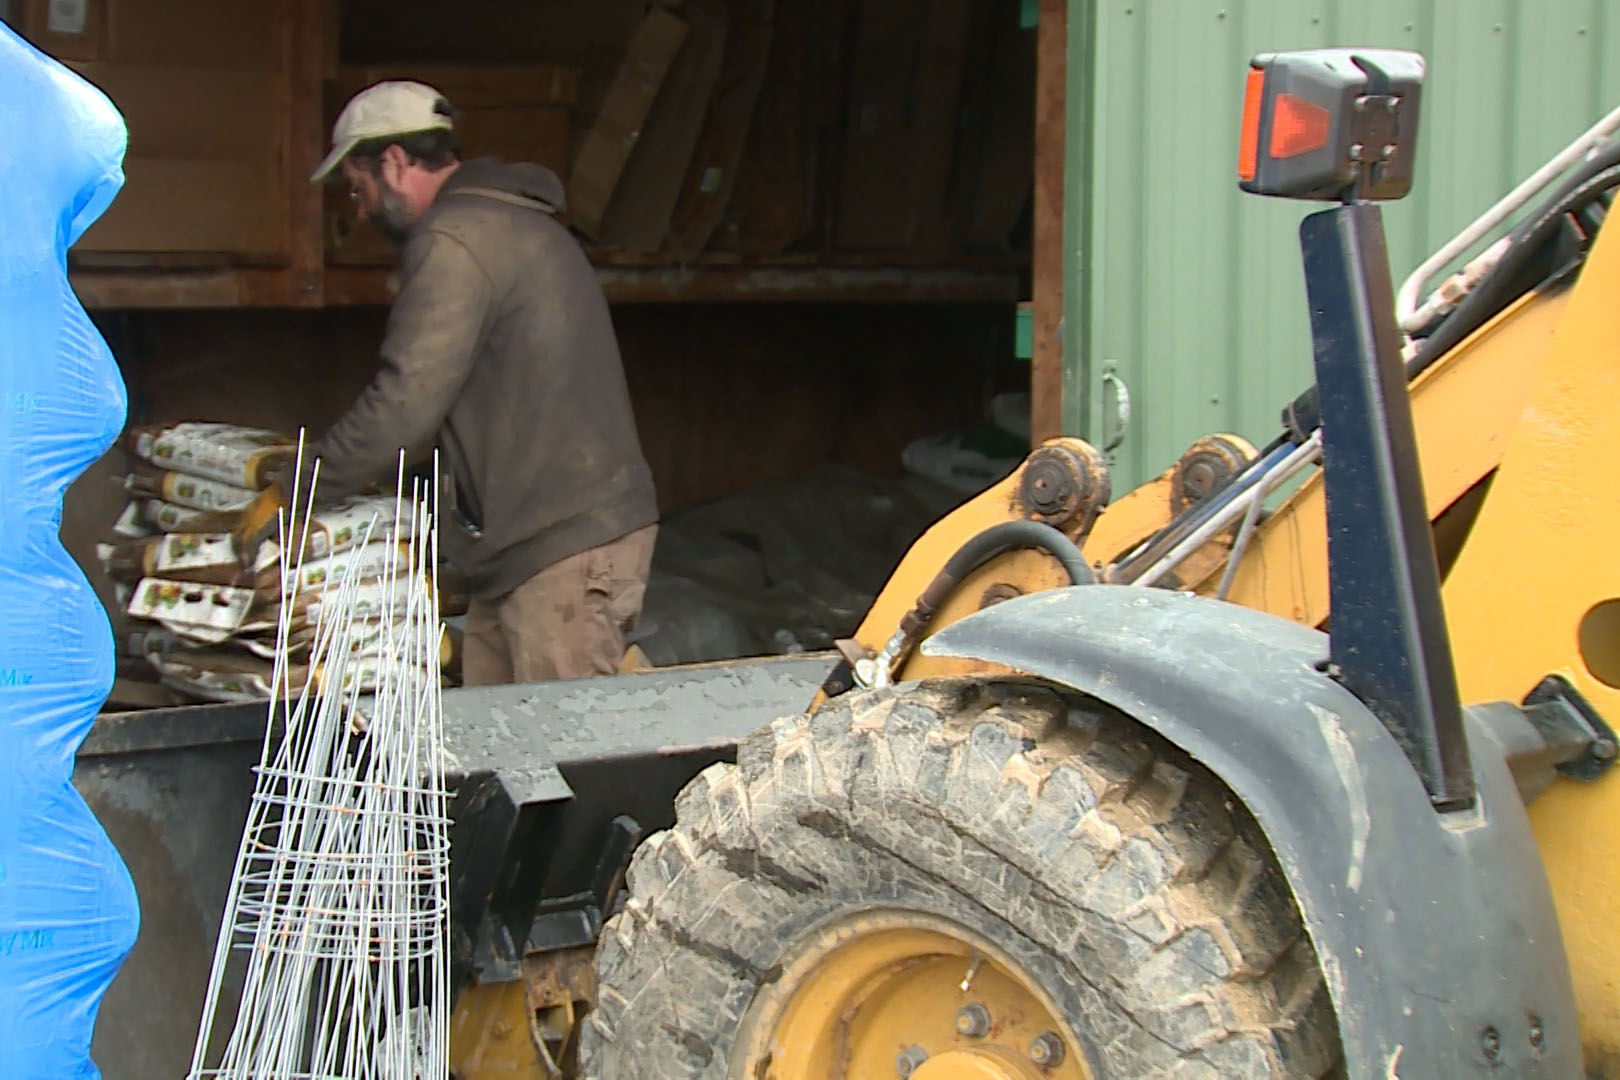 A man in a brown jacket works in a green shed with a tractor in front.